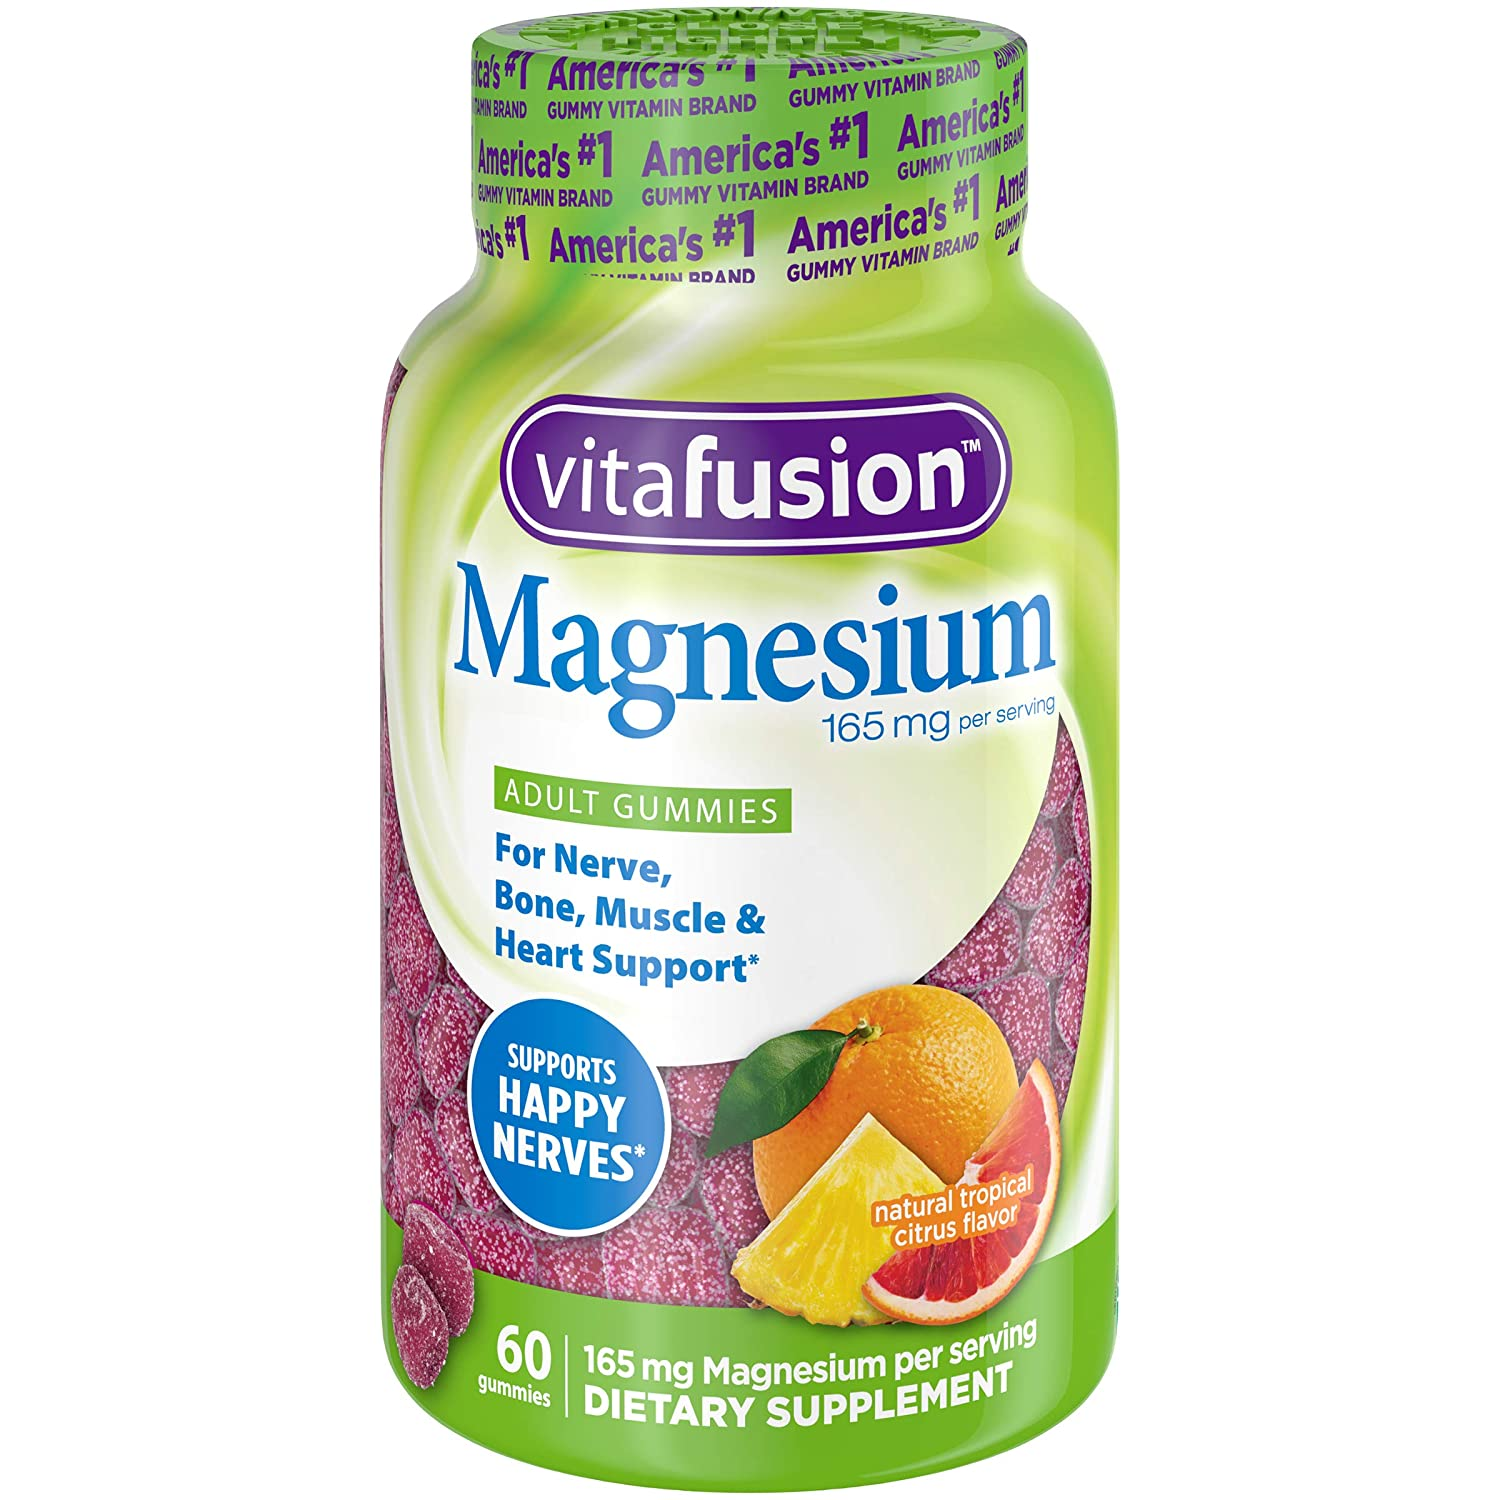 Vitafusion Vitafusion Magnesium Gummy Supplement, 60ct, Citrus, 60 Count